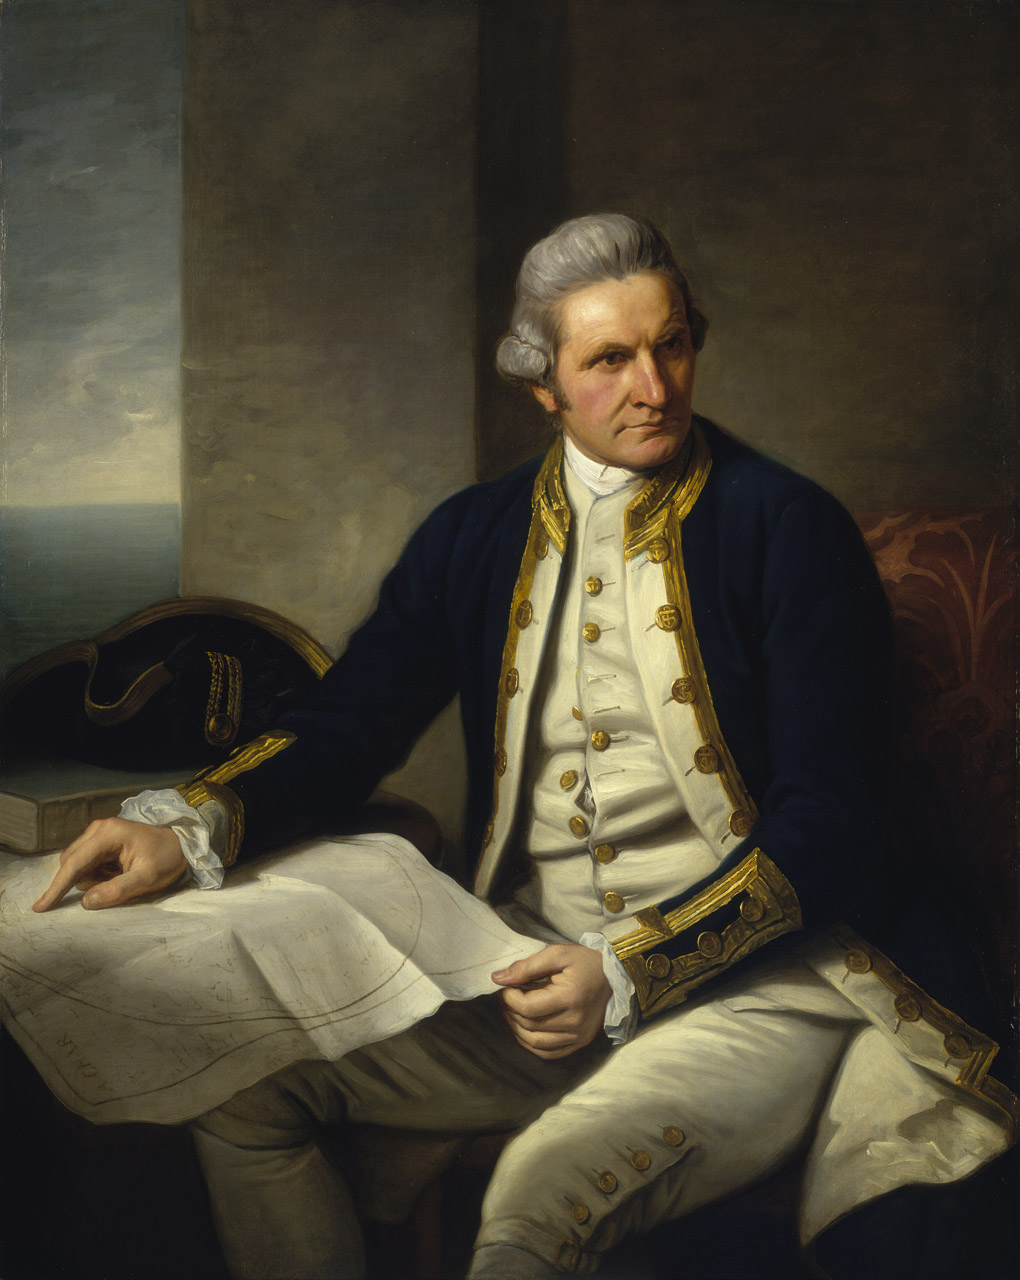 James Cook, portrait by Sir Nathaniel Dance-Holland, c.1775, National Maritime Museum, Greenwich